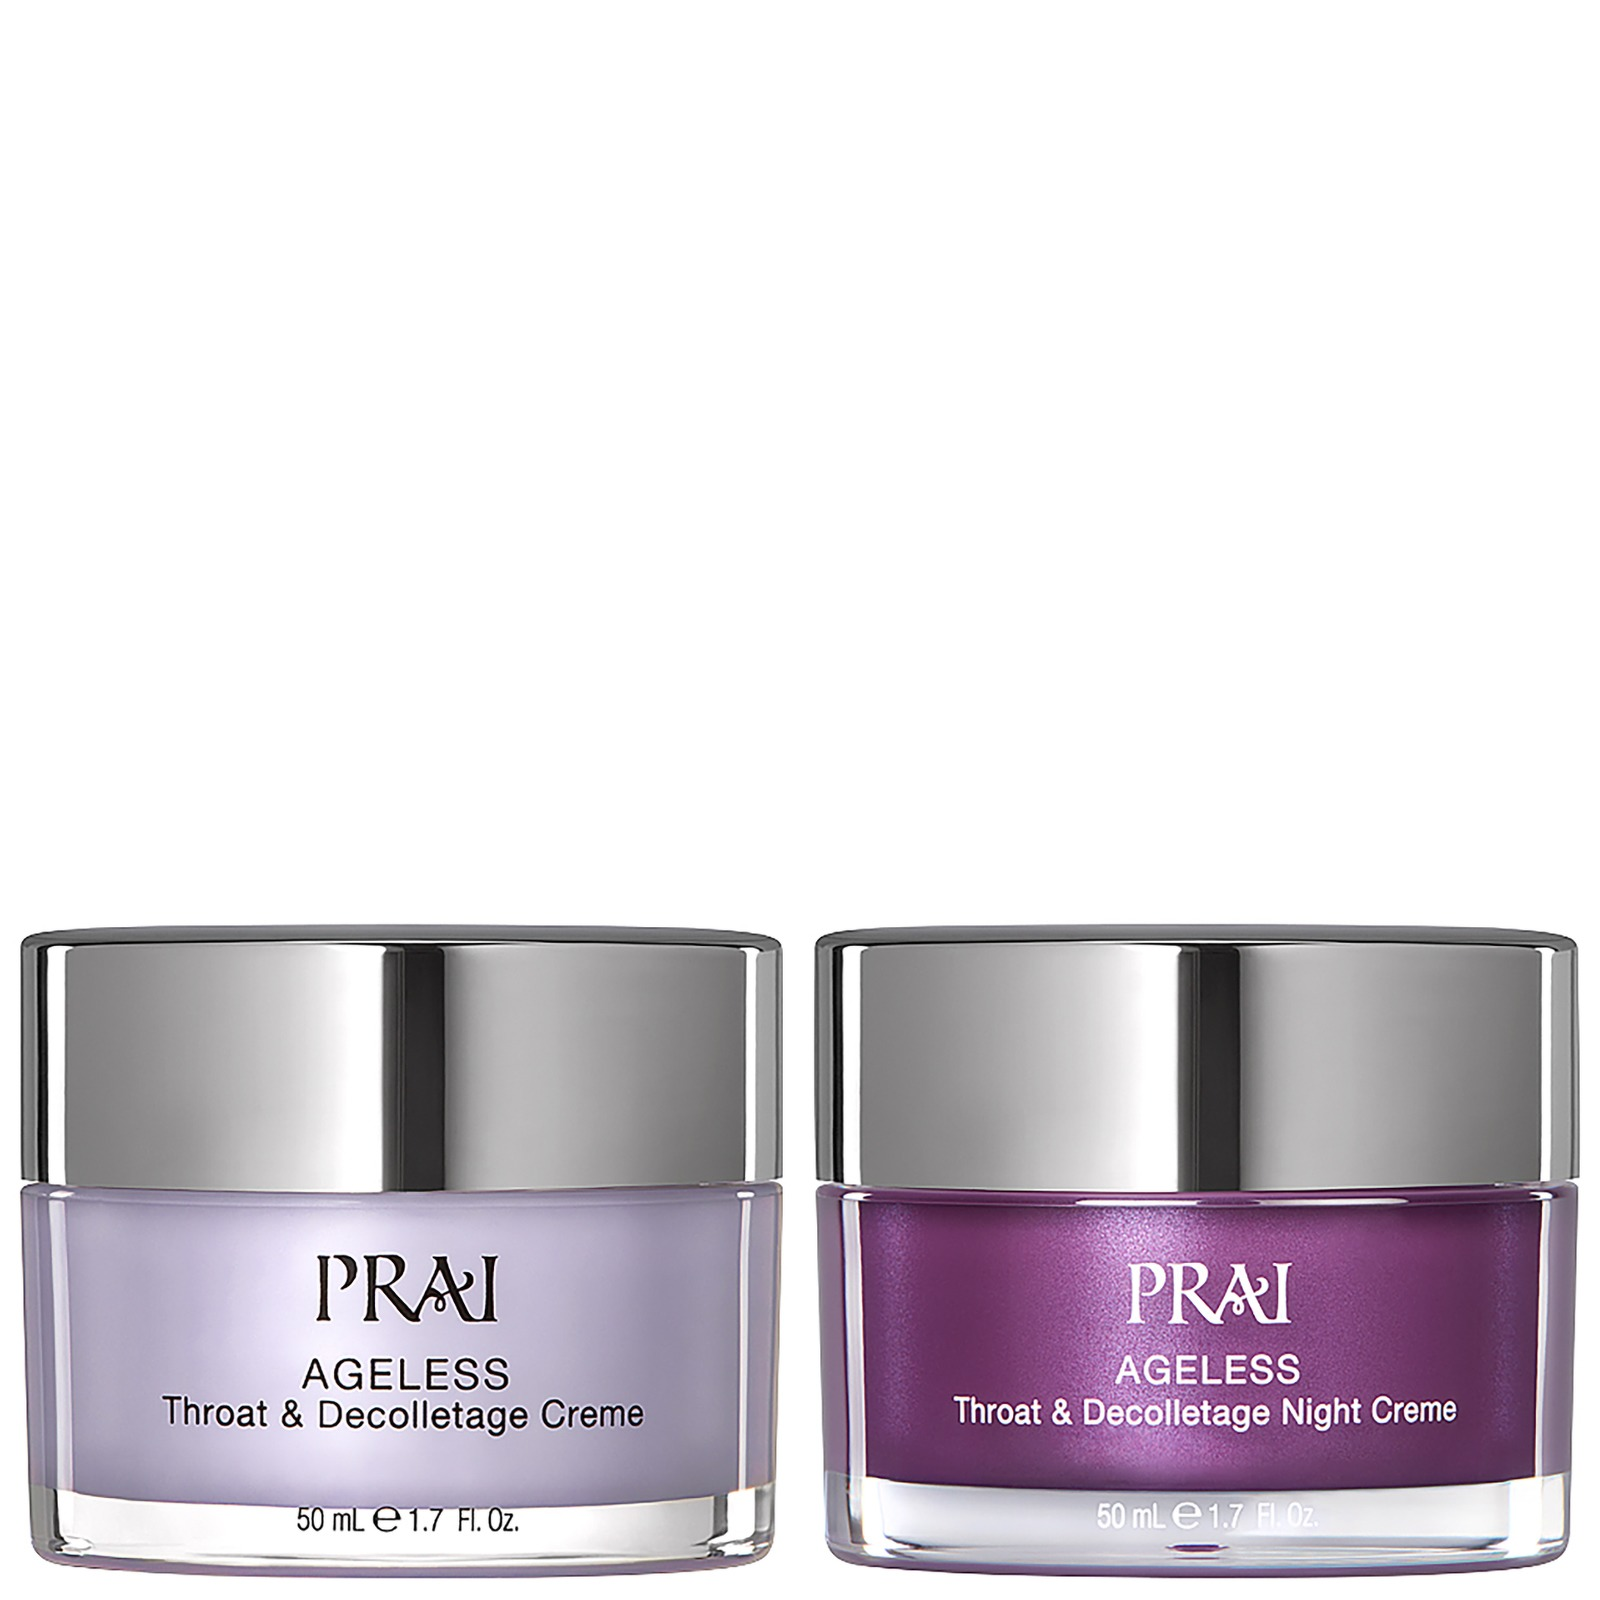 prai ageless throat and decolletage creme reviews